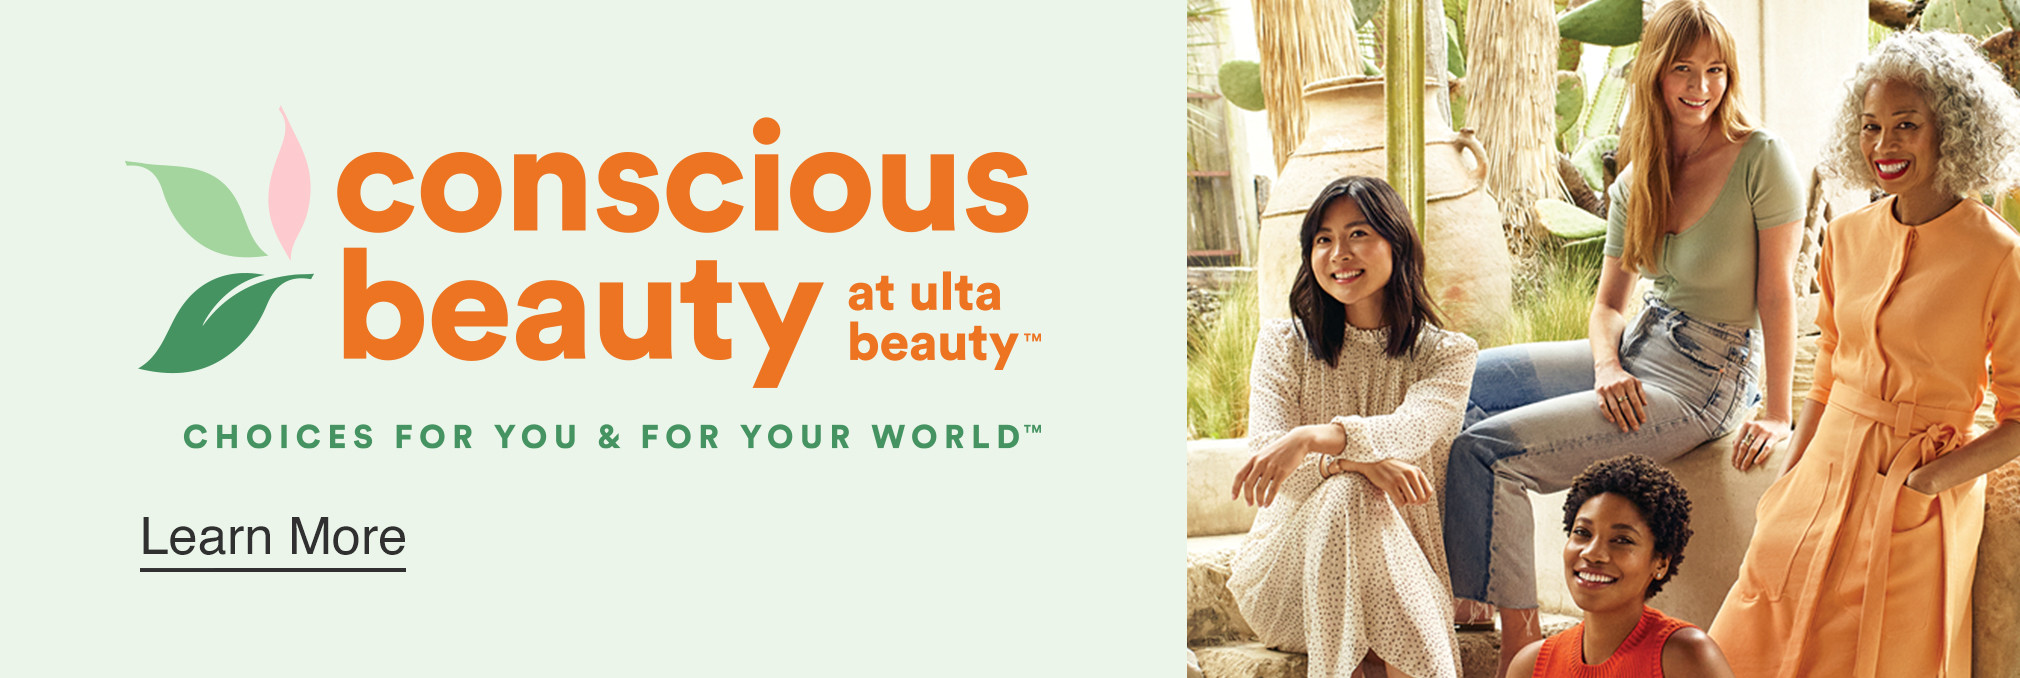 Conscious Beauty at Ulta Beauty - Choices for you & for your world